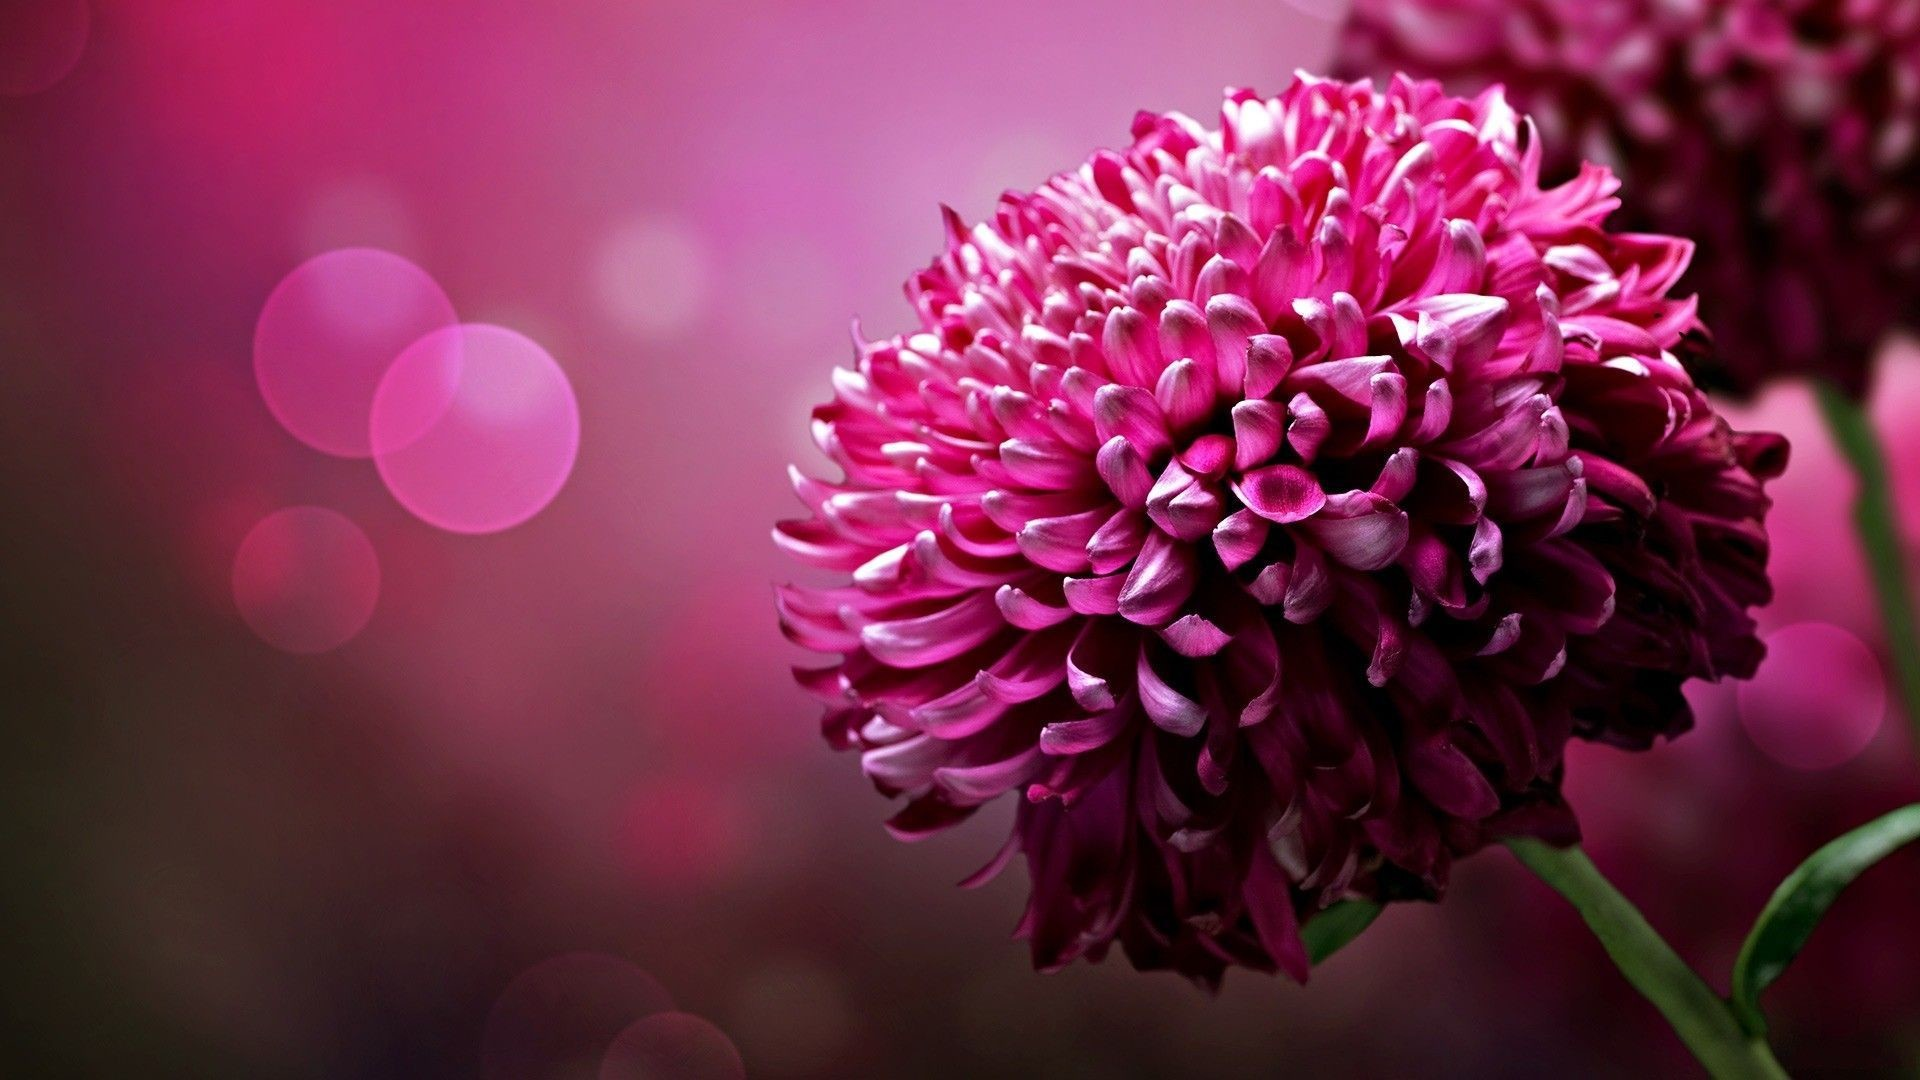 flowers wallpaper 64 images